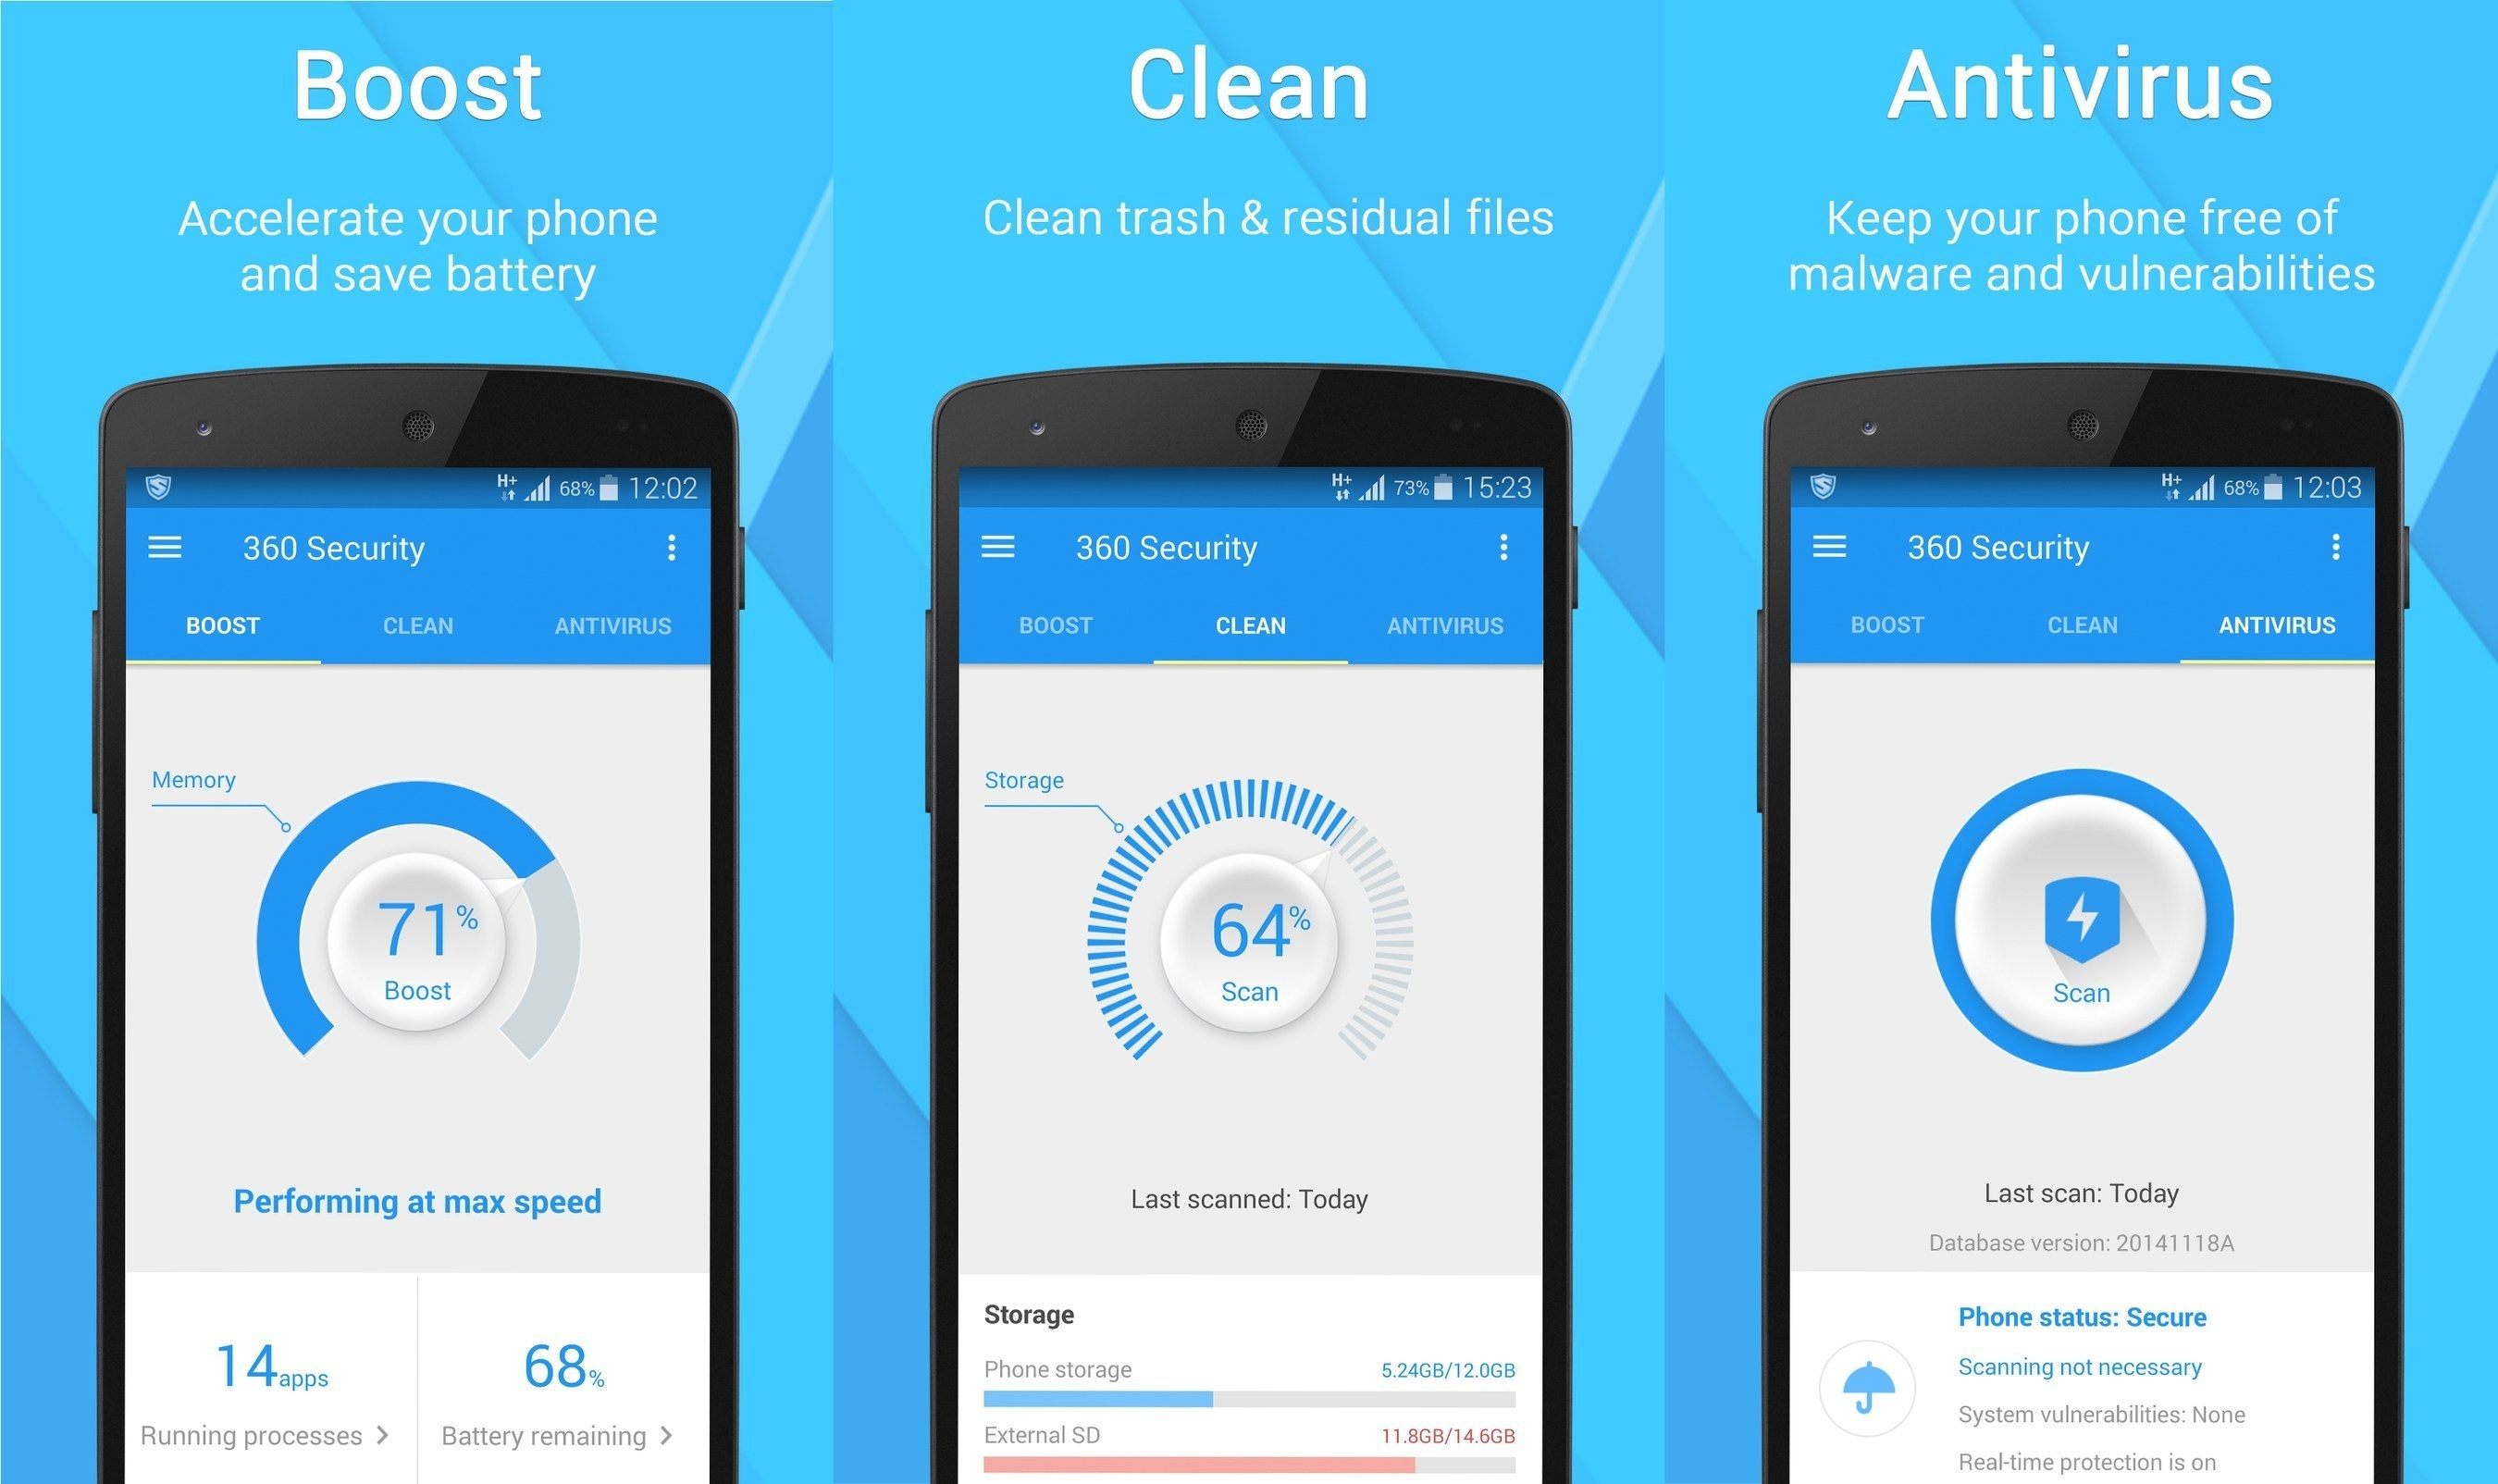 Boost your smartphone's speed, clean junk files, fend off viruses, and more with 360 Security.